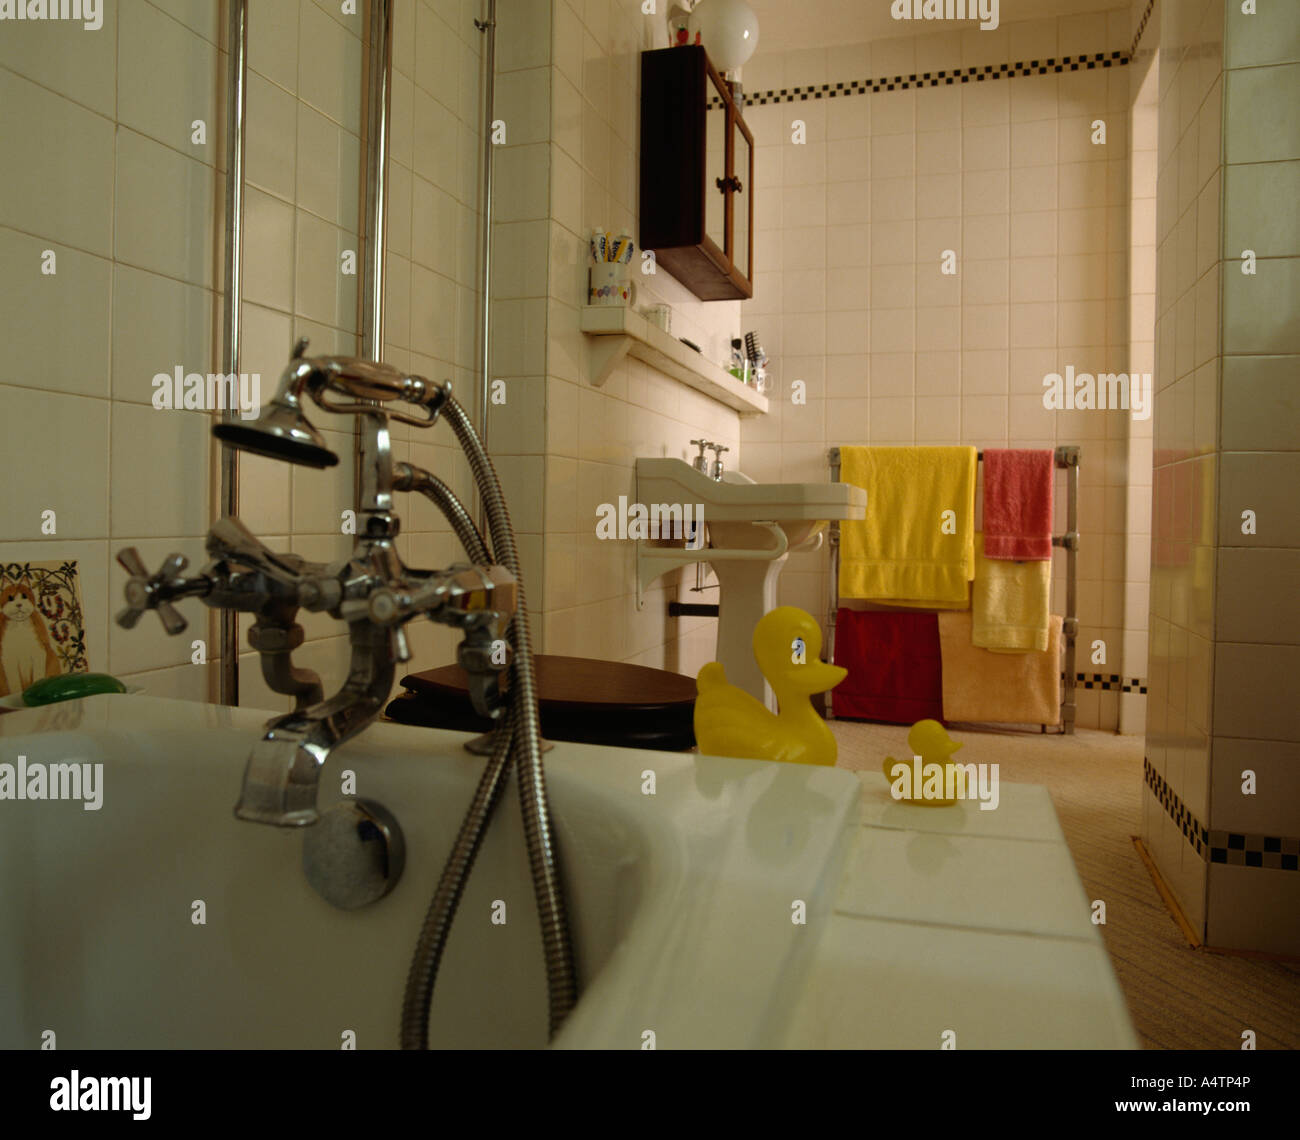 Bath with shower attachment and taps and yellow plastic ducks on ...